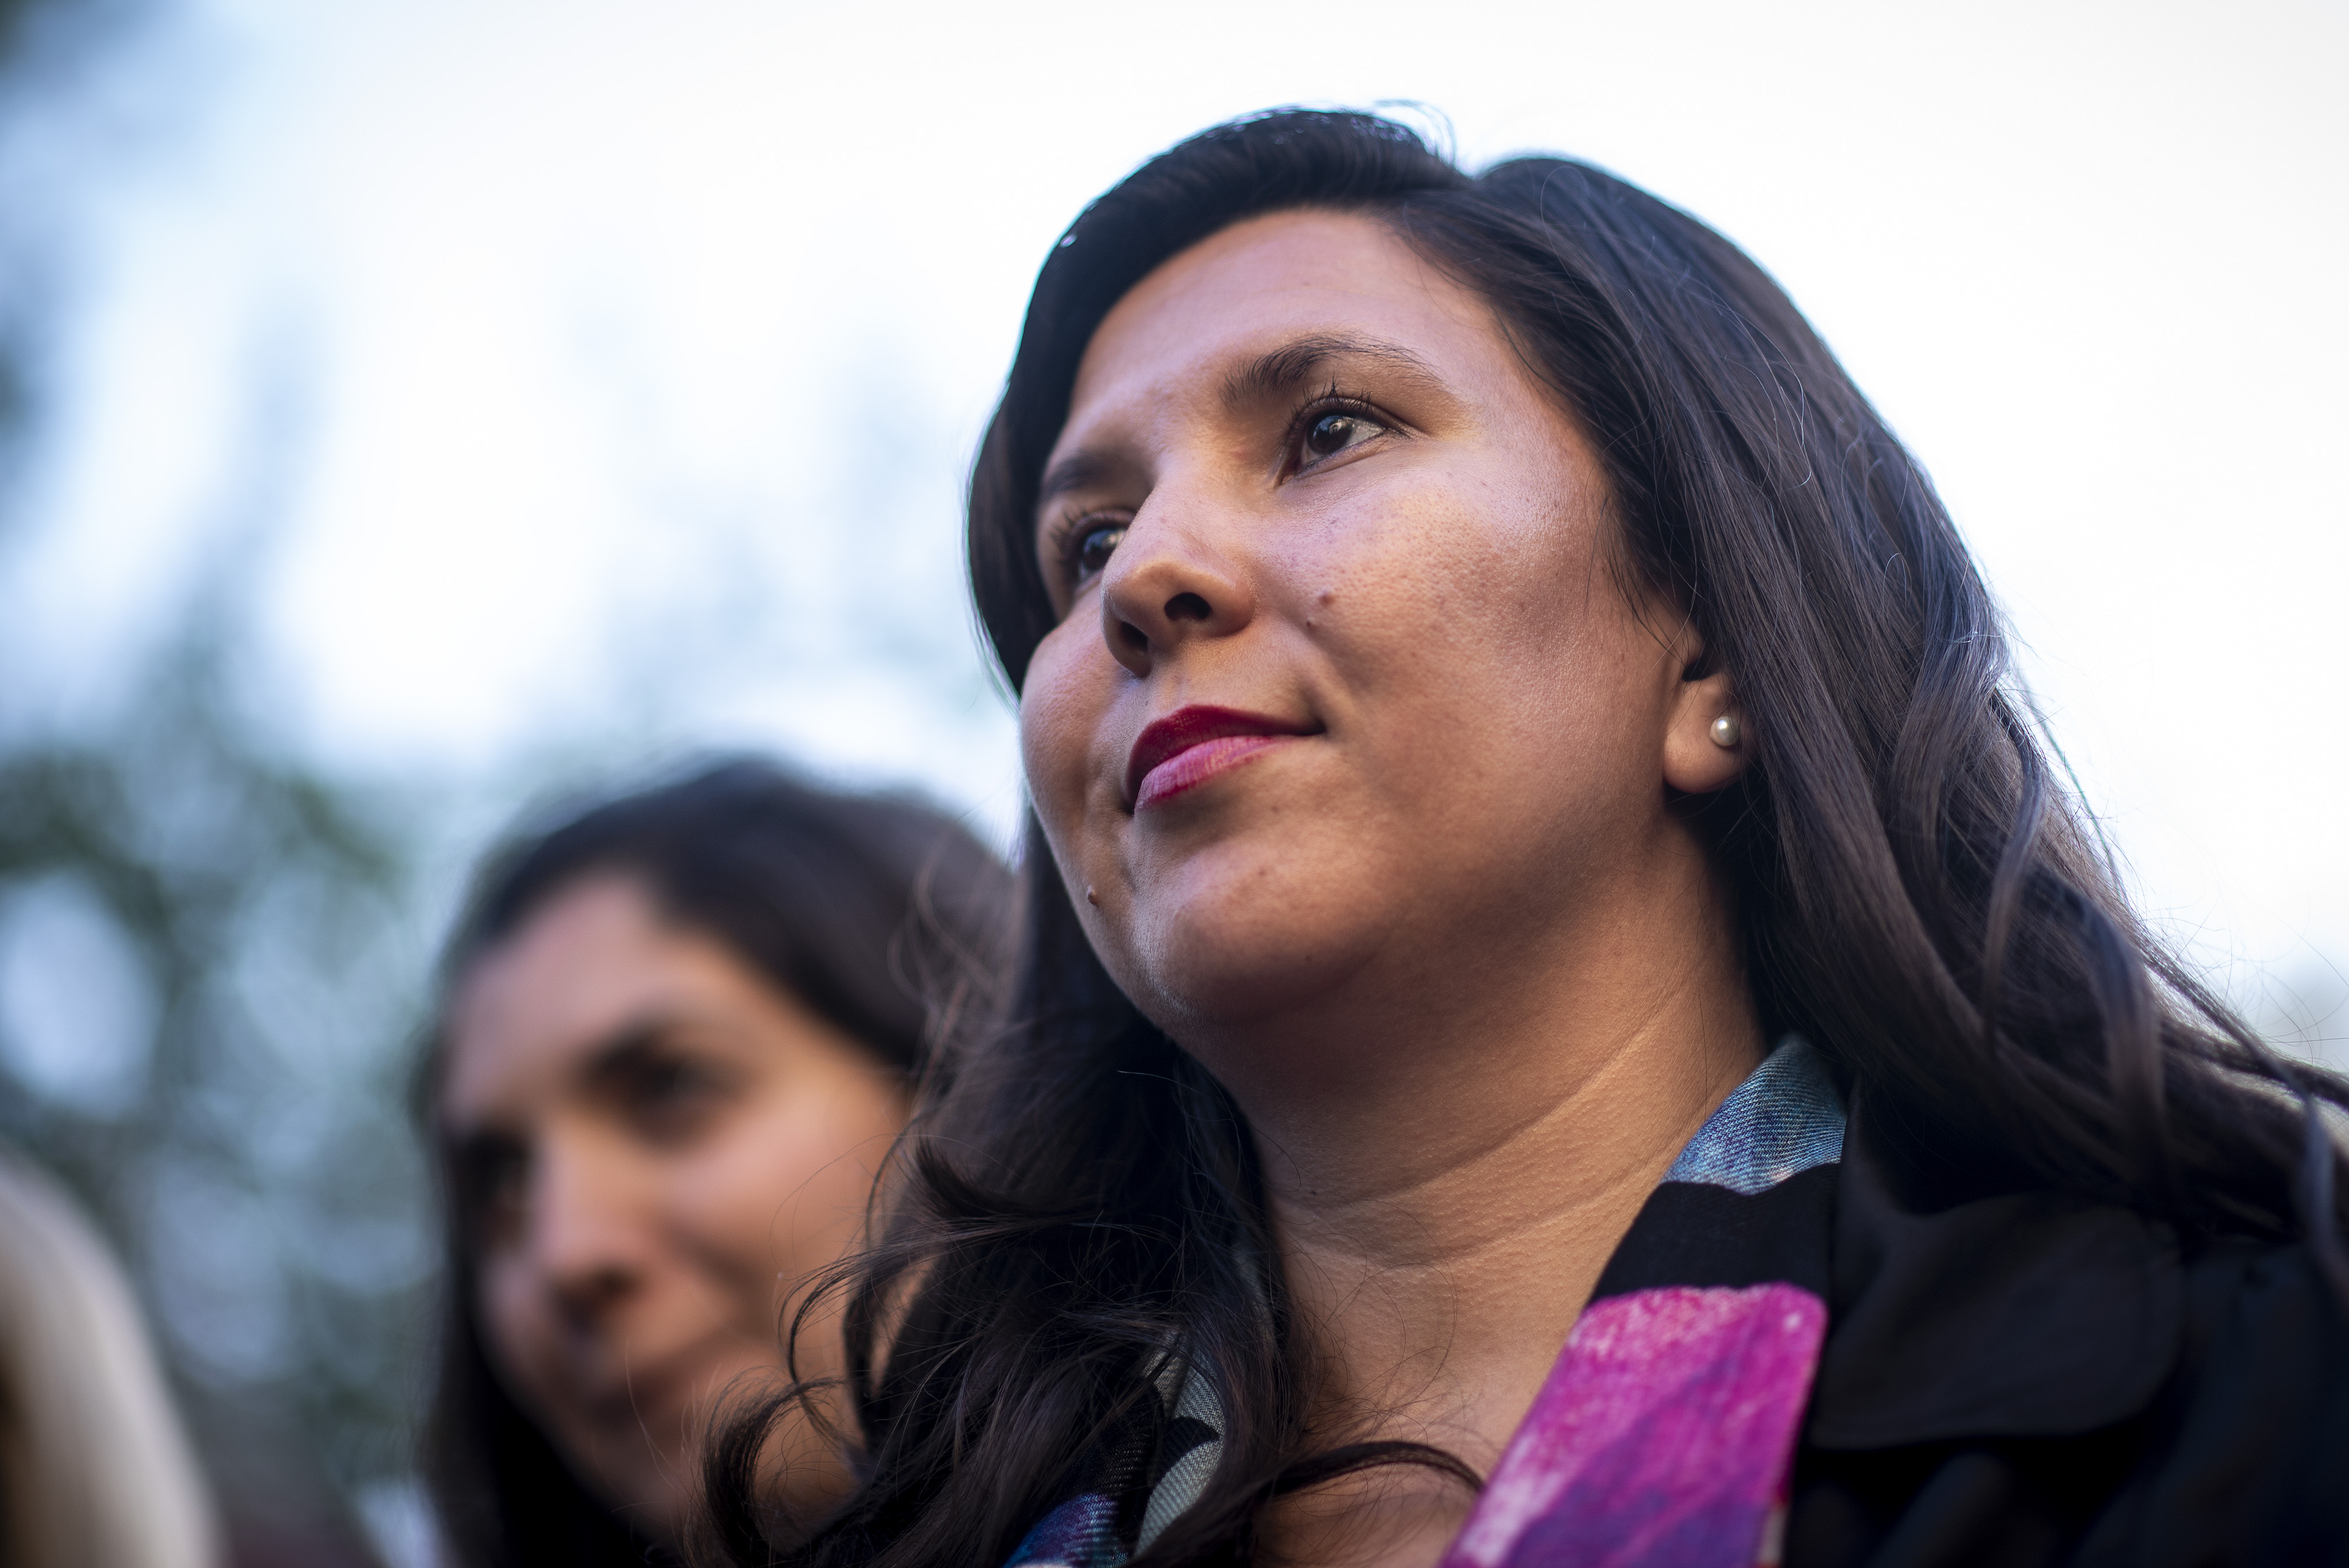 Obama Fellow Veronica Crespin-Palmer listens to a speech during an event.